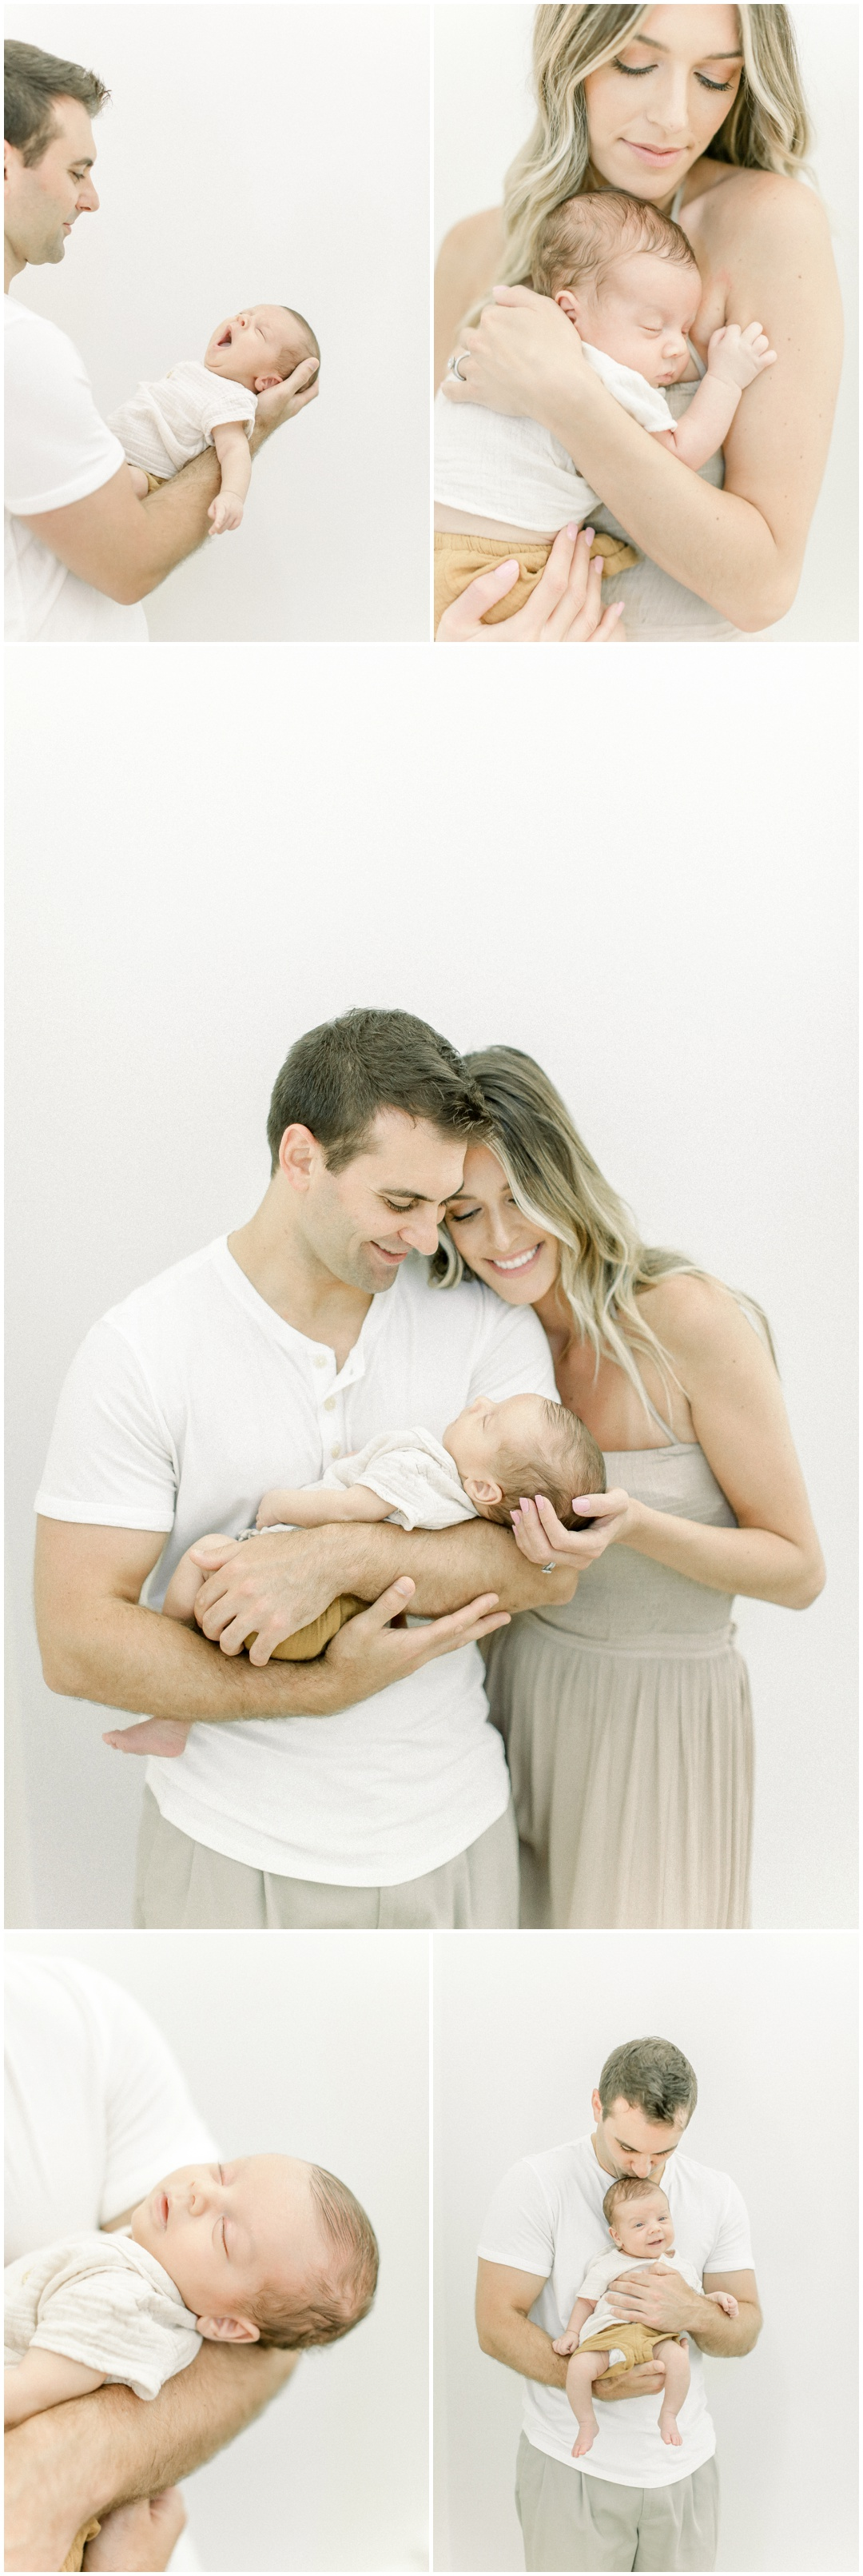 Newport_Beach_Newborn_Session_Orange_County_Family_Photographer_Danielle_Saluan__4286.jpg